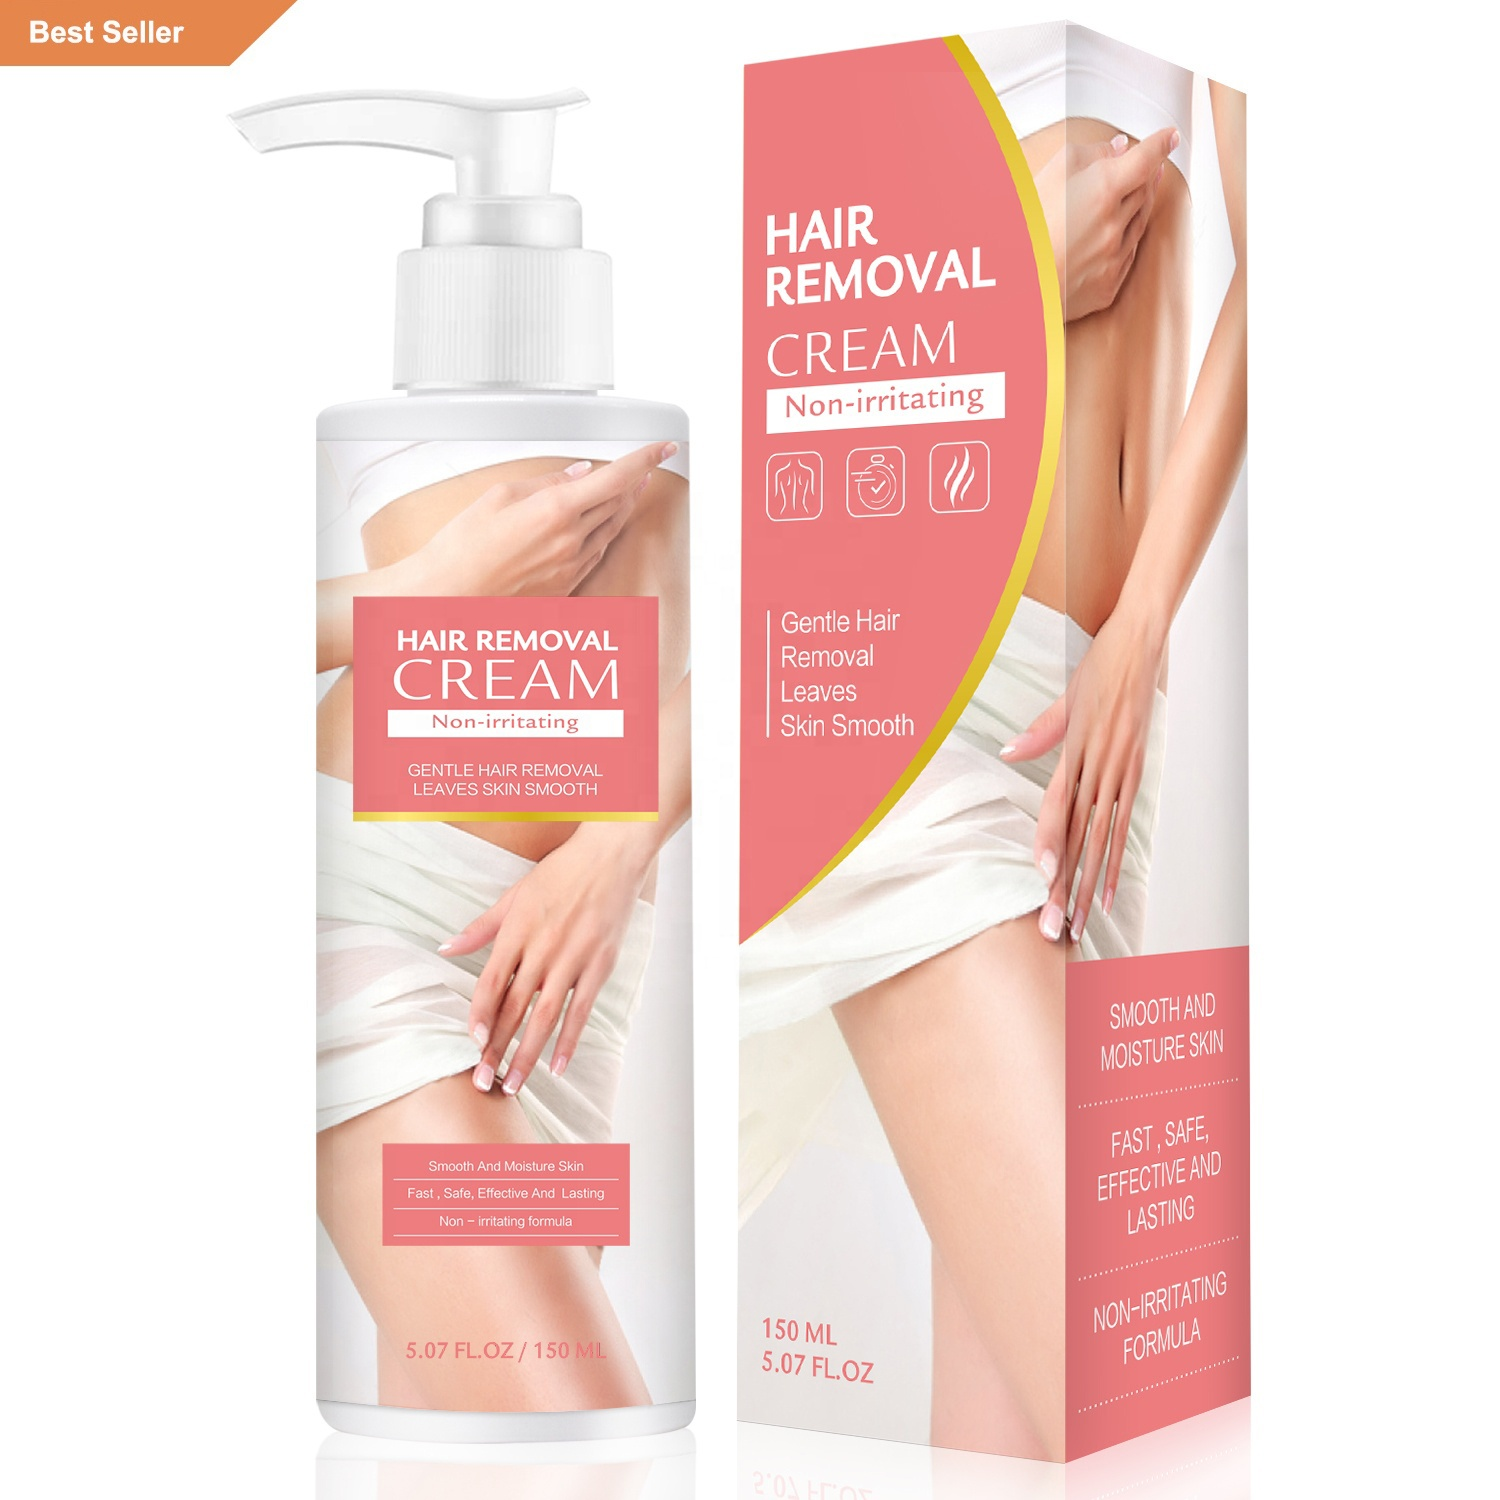 Effective Non-irritating Fast Remove Unwanted Body Hair in 5 minutes Depilatory Hair Removal Cream